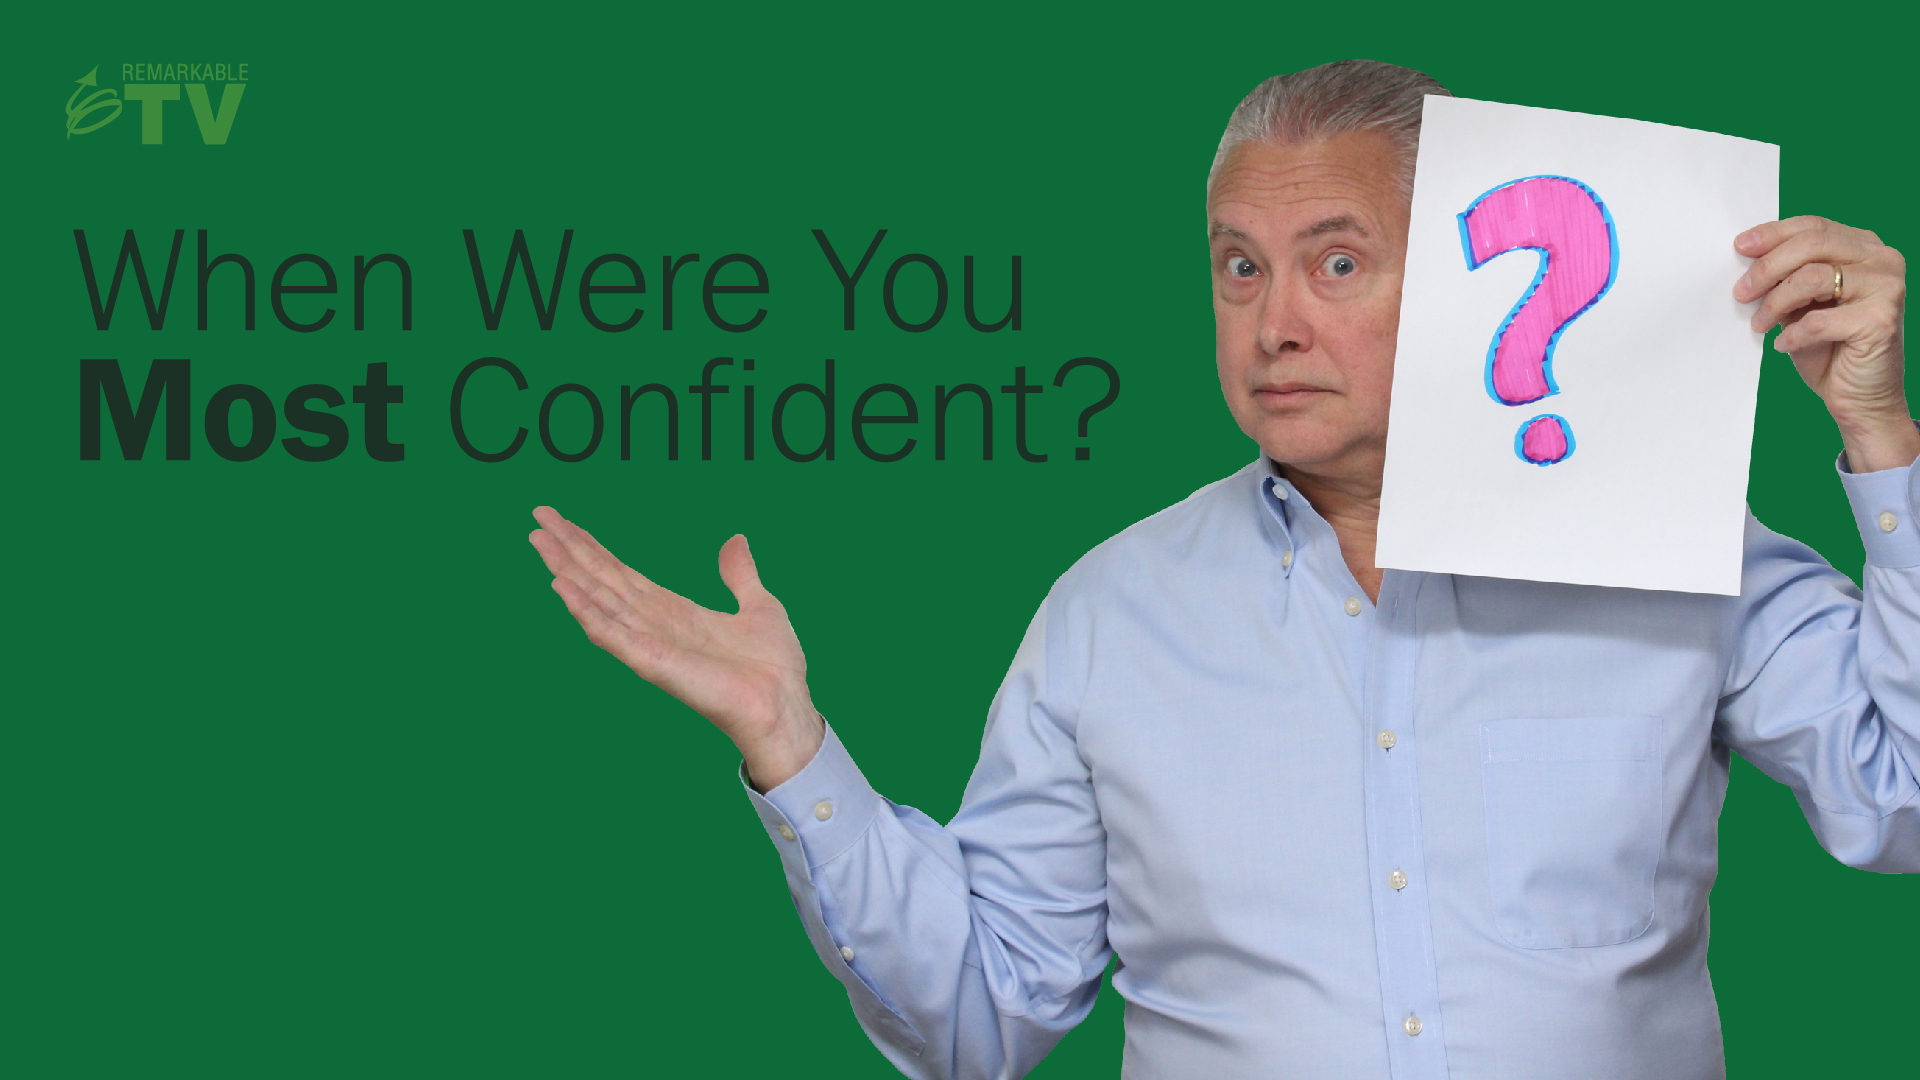 Video Splash Image for When Were You the Most Confident video